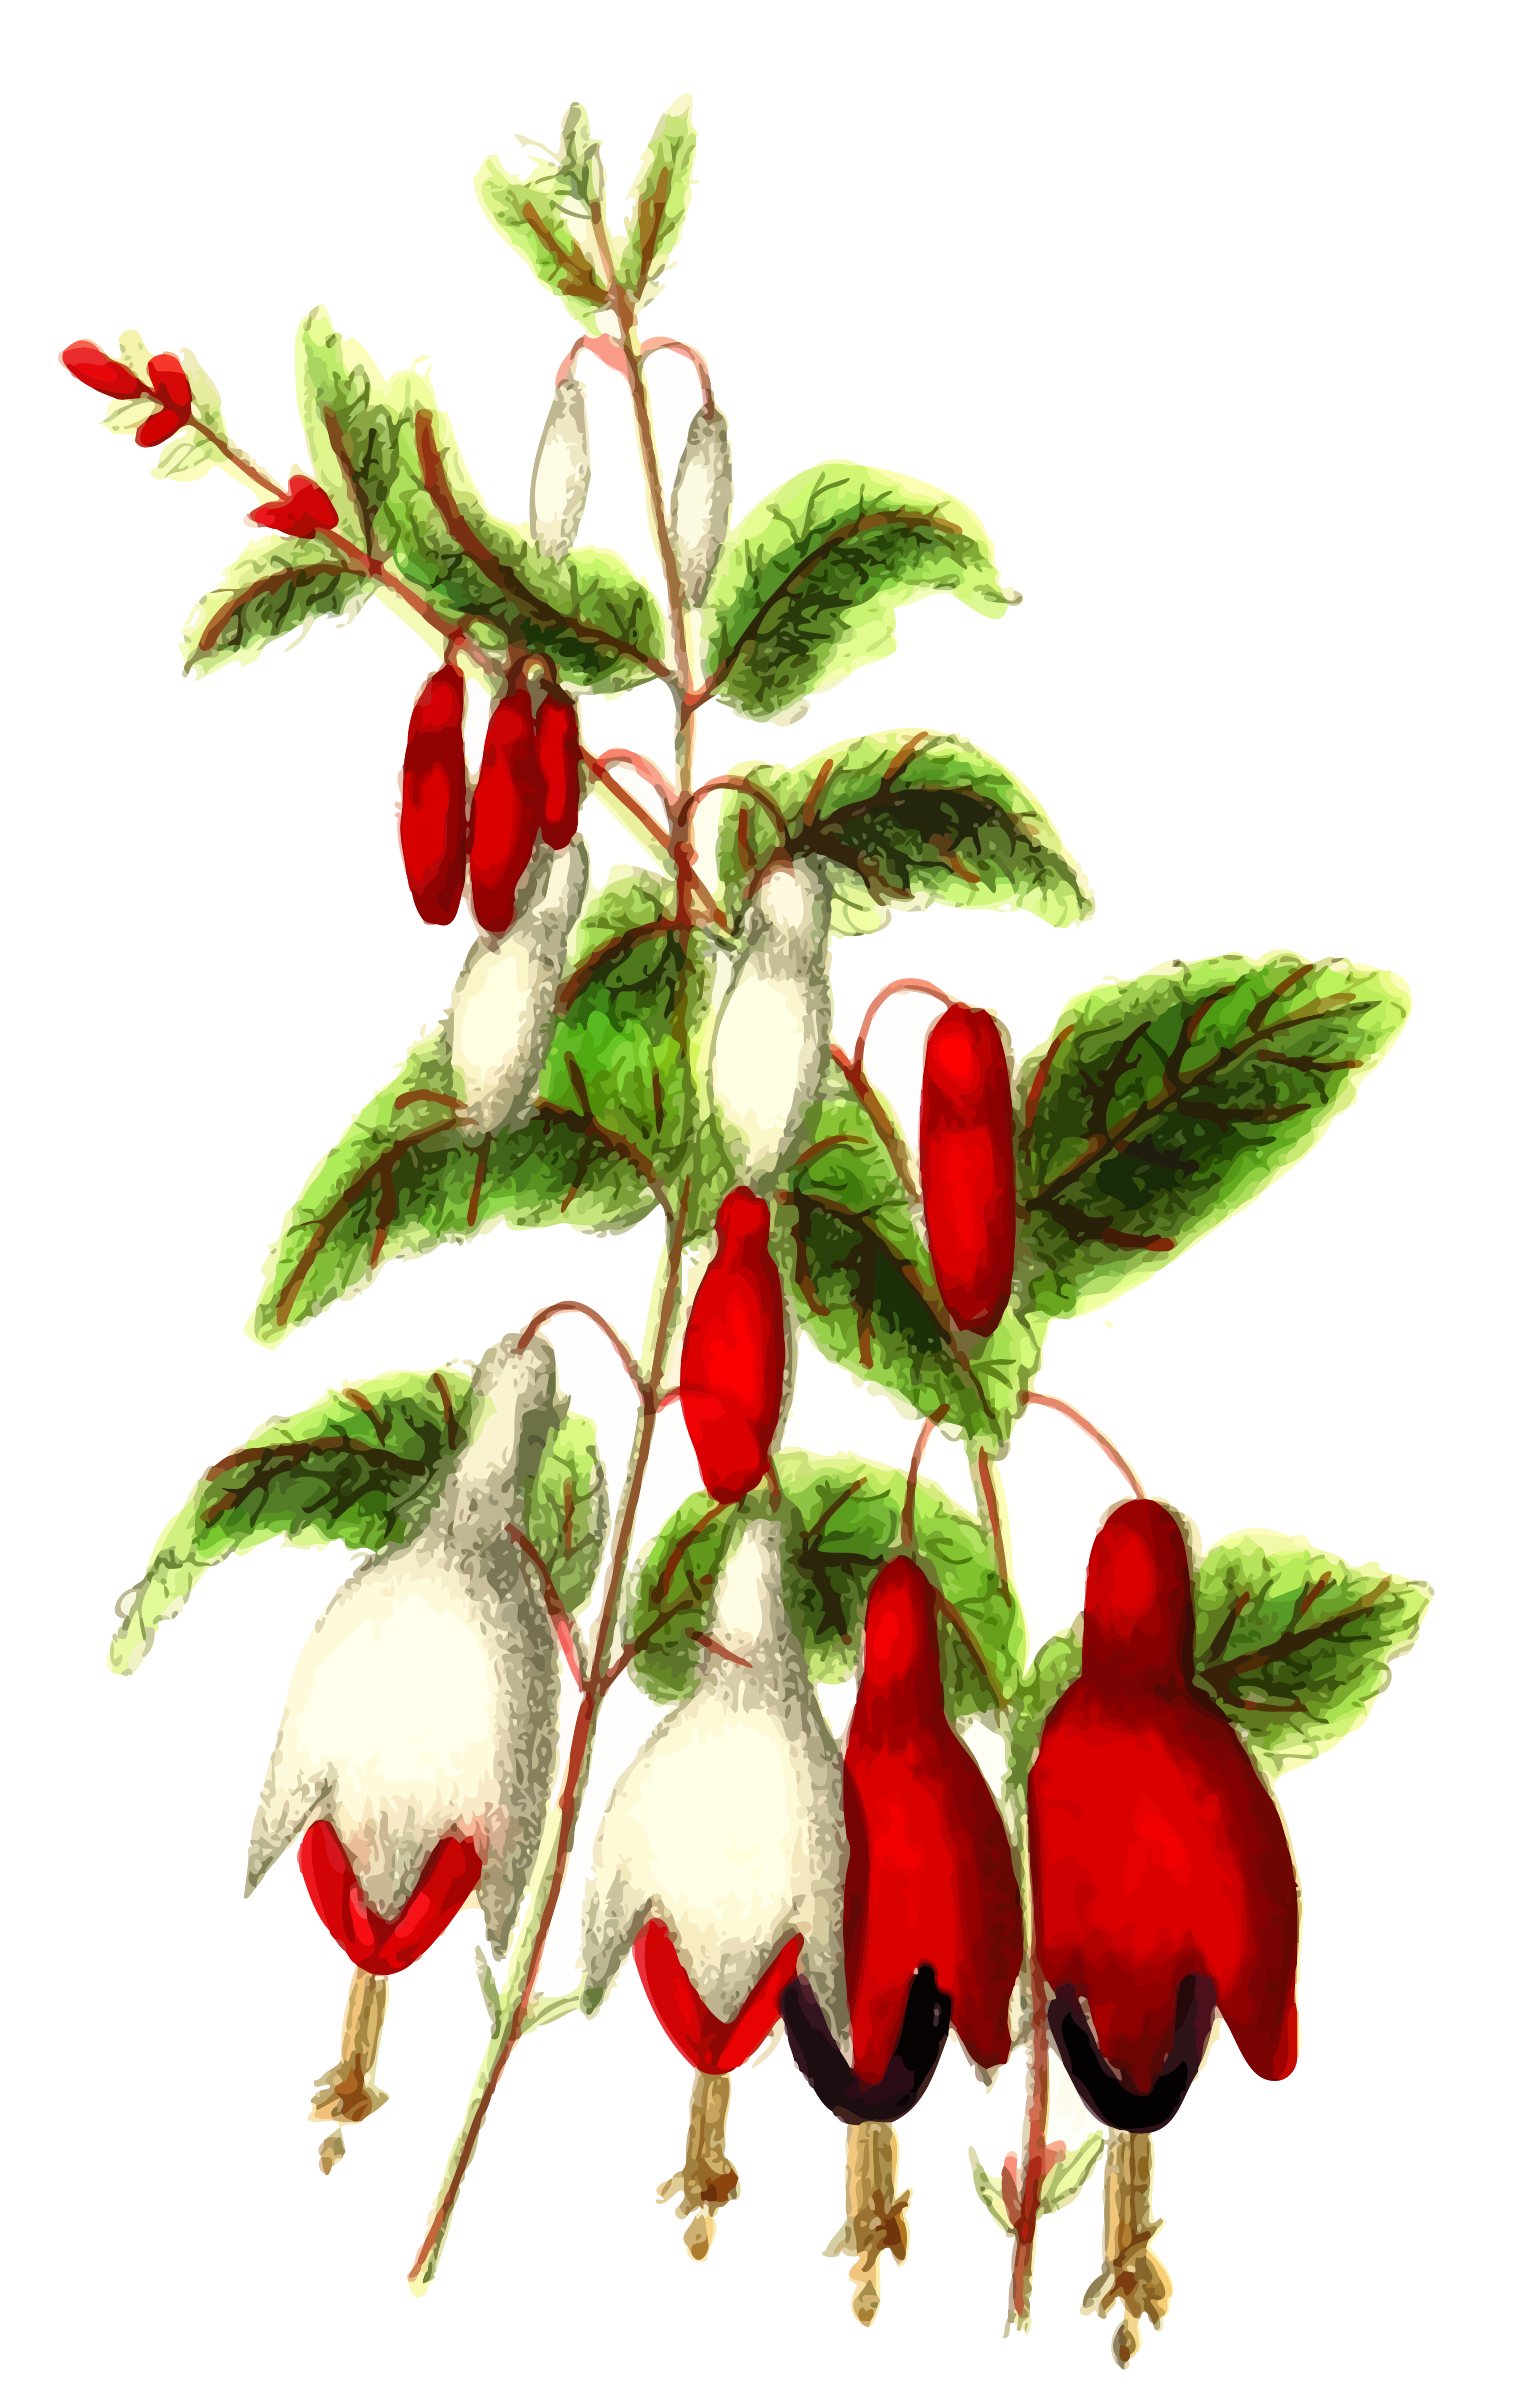 Fuchsia by Firkin